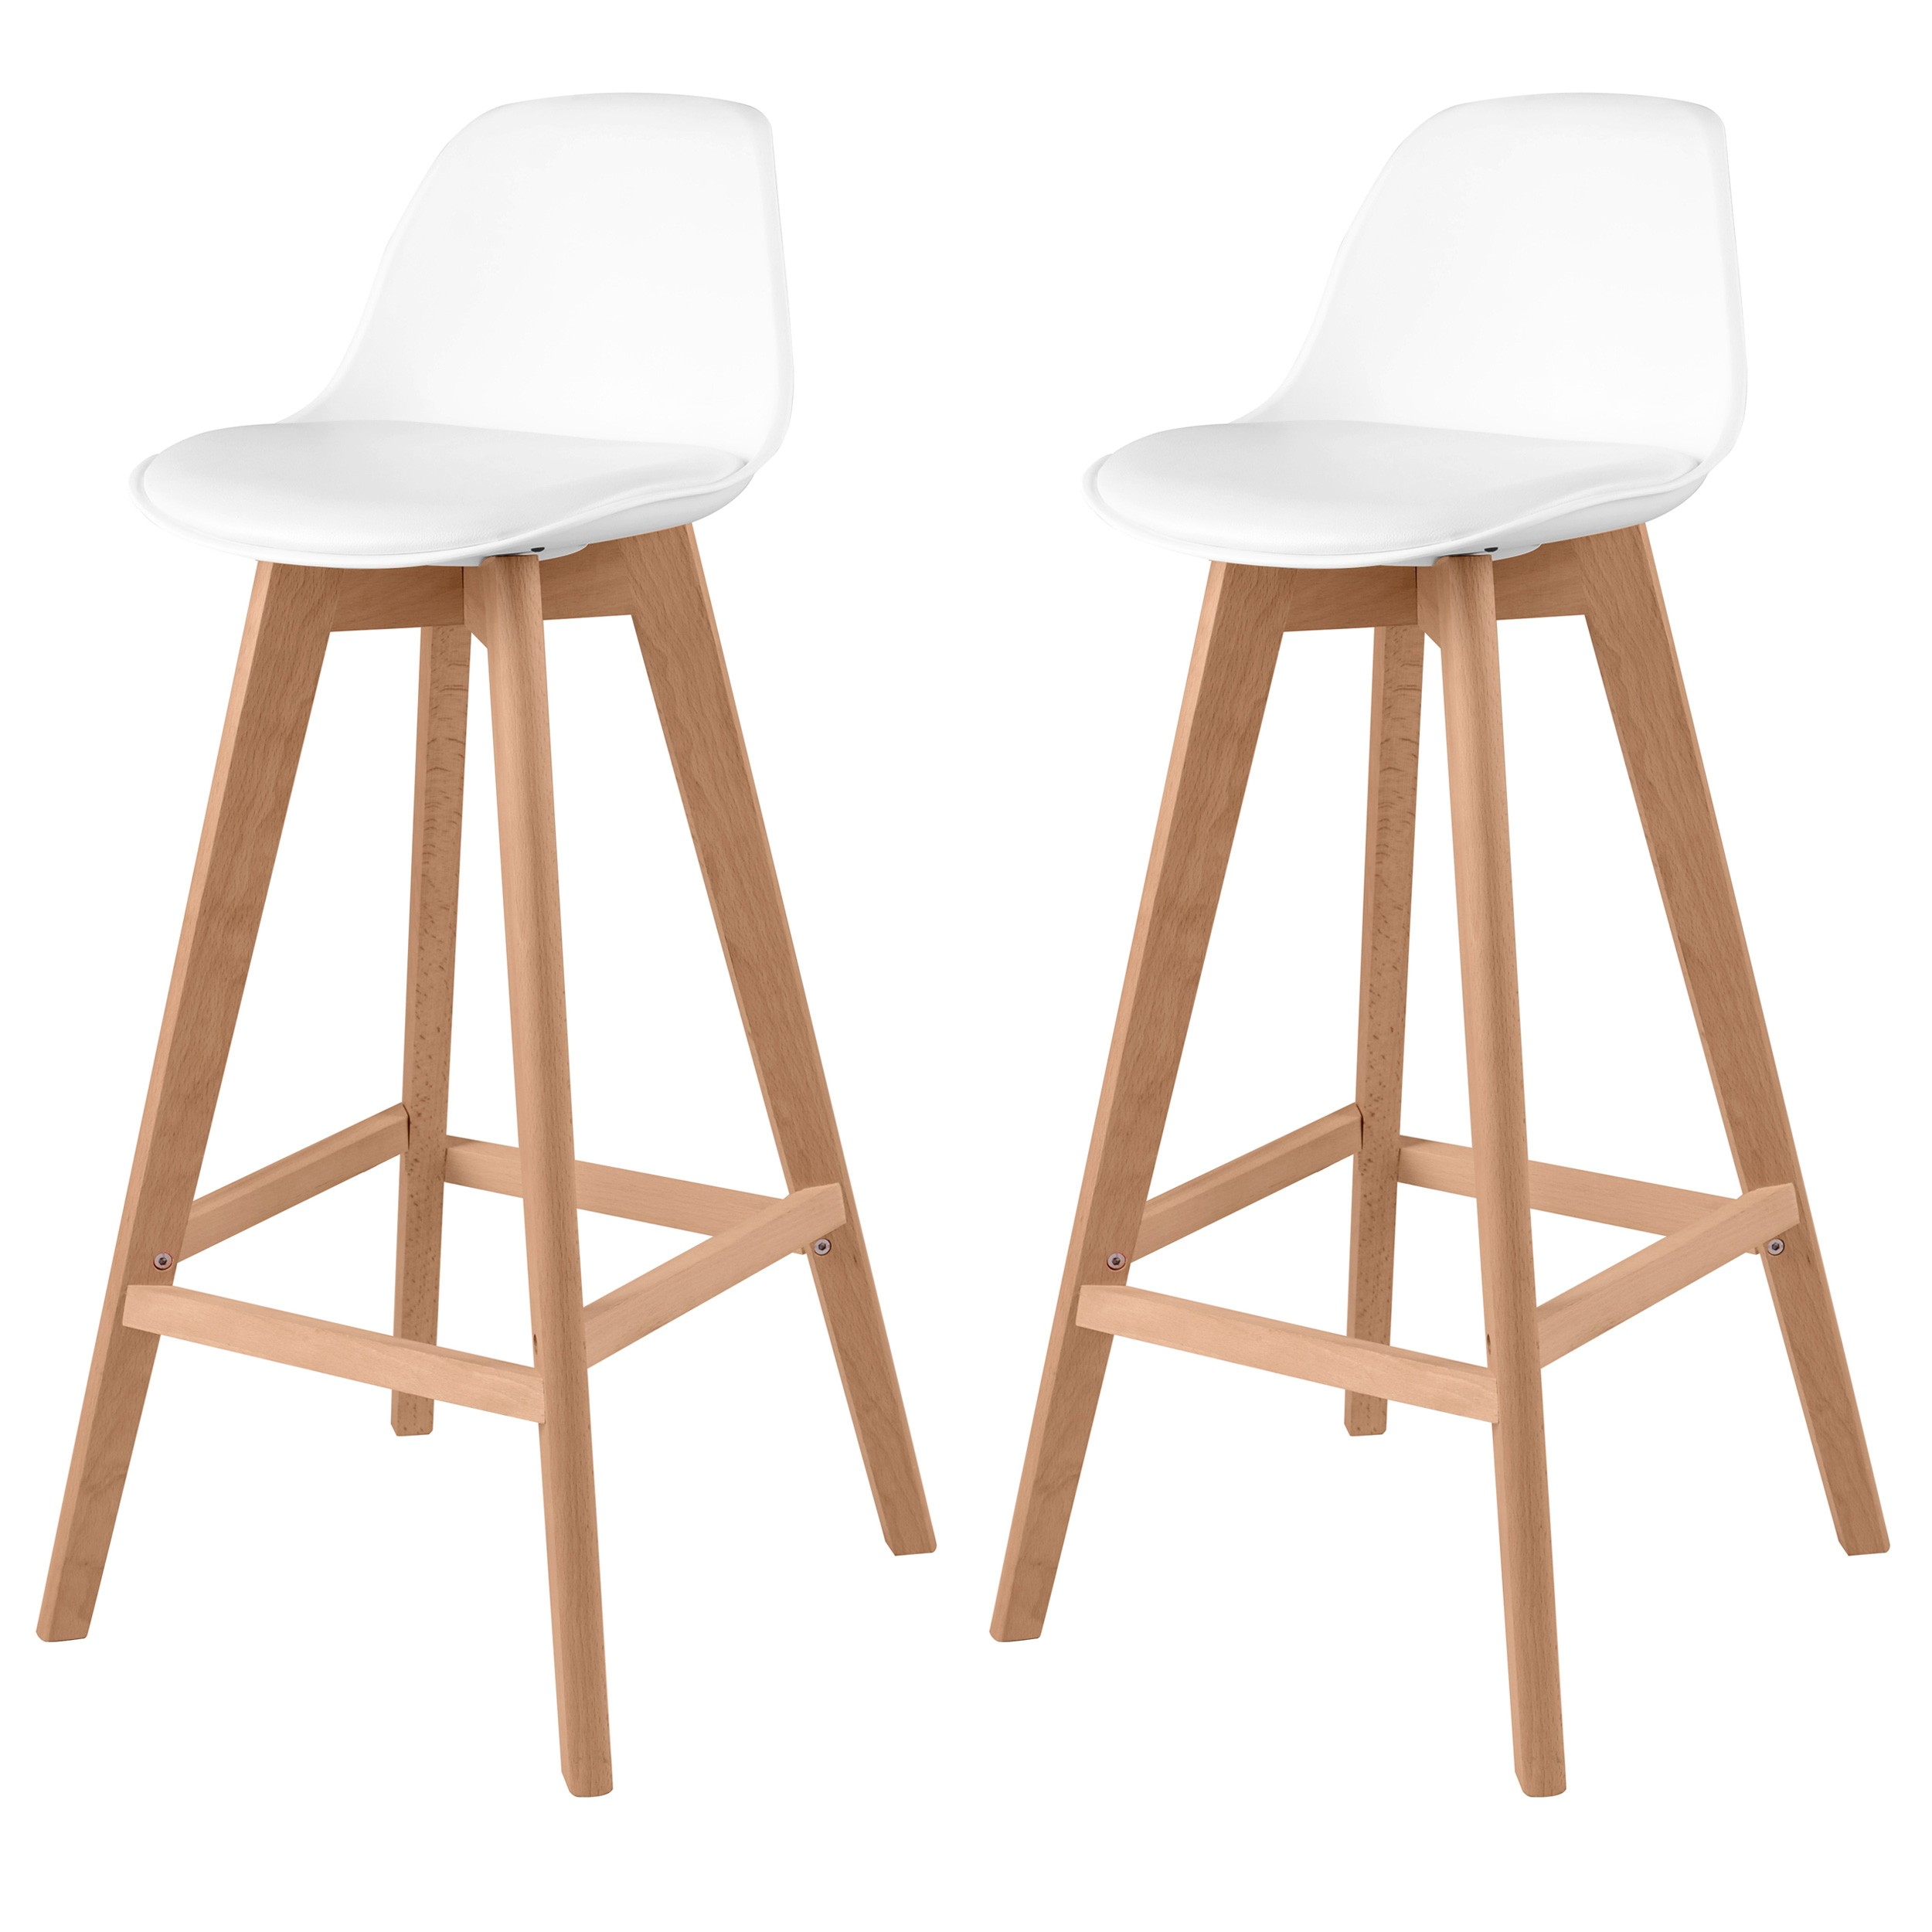 Chaises De Bar Blanches Chaise De Bar Skandi Blanche Lot De 2 Adoptez Un Lot